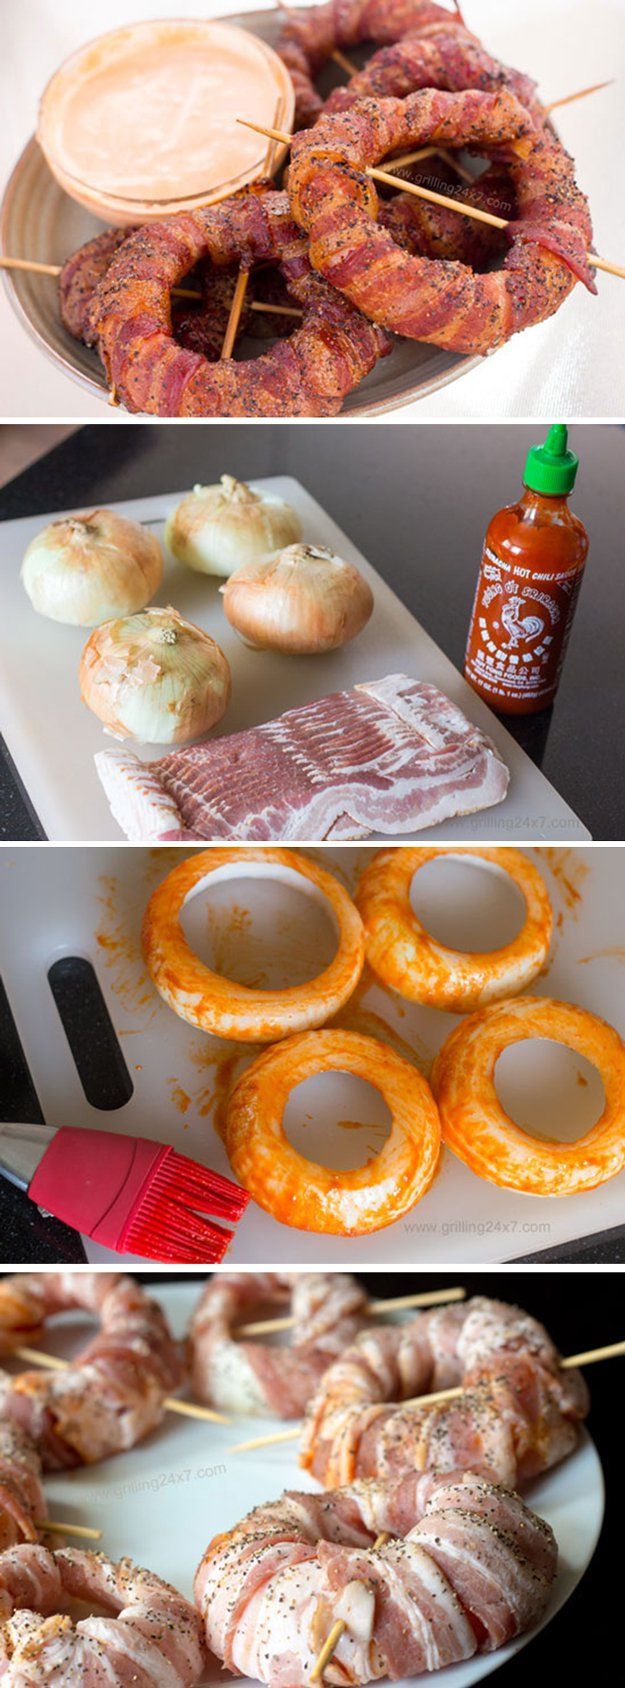 44 Saucy BBQ Recipes & Ideas for Creative Kitchens DIYReady.com | Easy DIY Crafts, Fun Projects, & DIY Craft Ideas For Kids & Adults